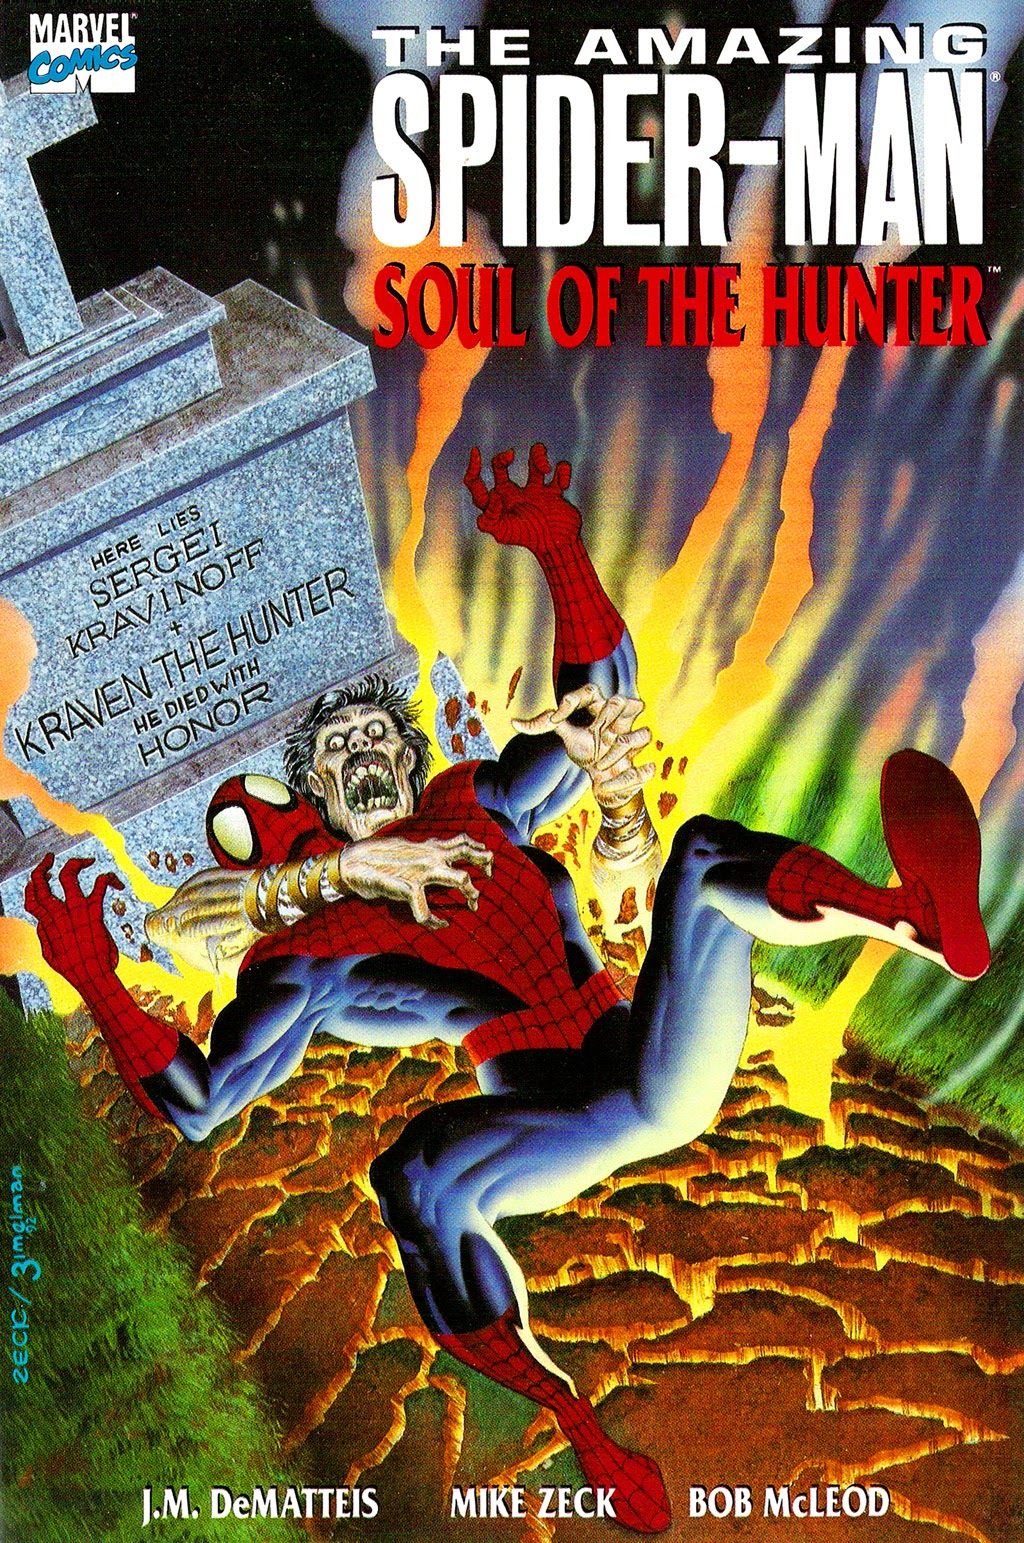 The Amazing Spider-Man: Soul of the Hunter Full Page 1